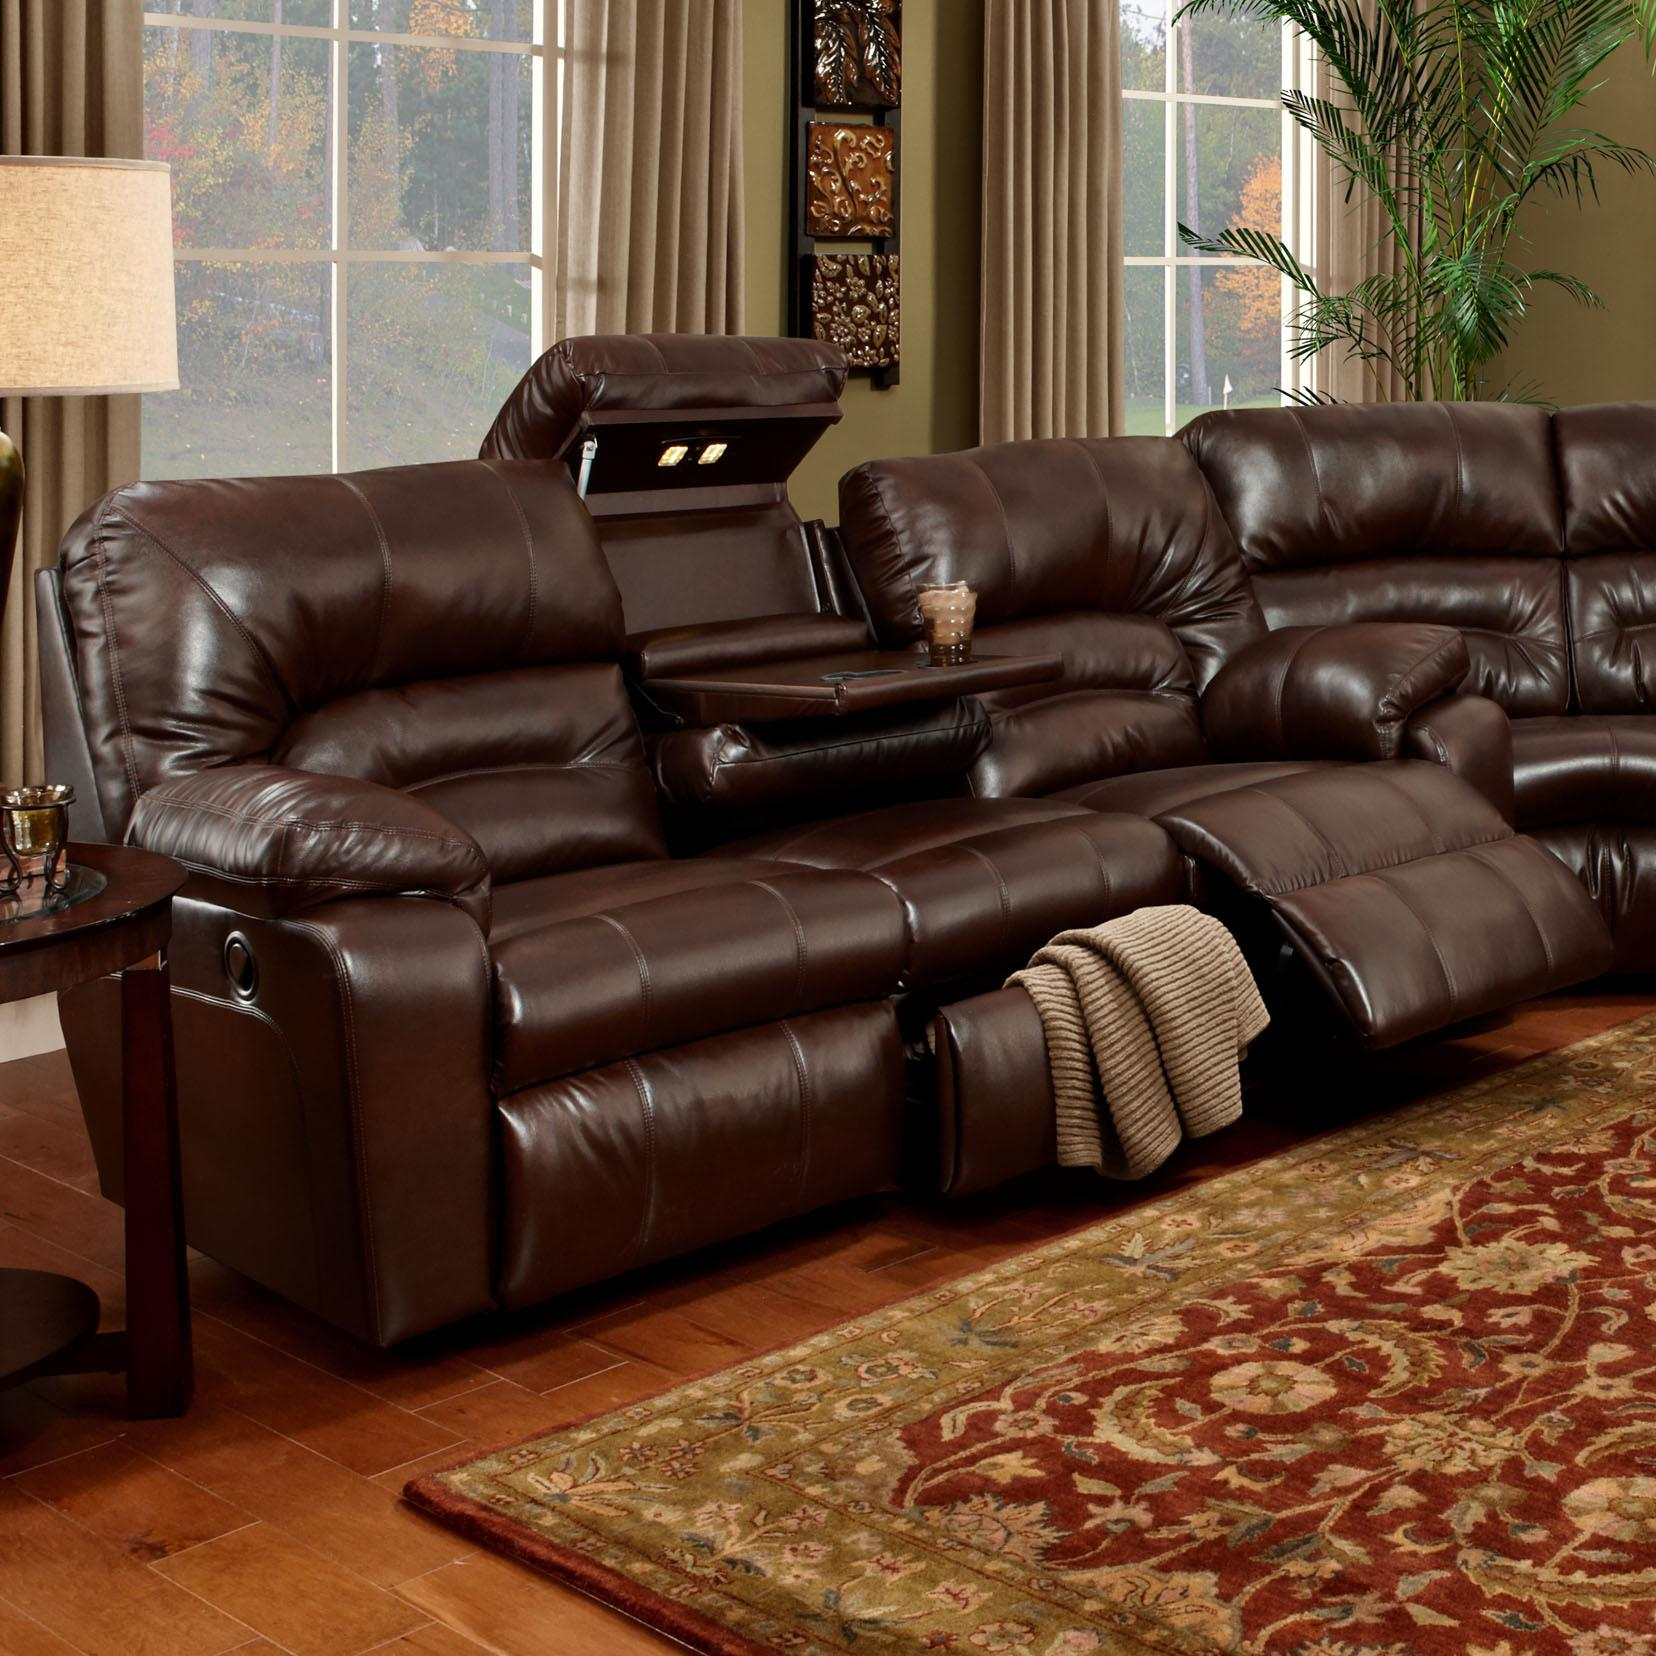 Beau Franklin 596 Sofa With Lights, Drawer And Storage   Item Number: 59639 7113